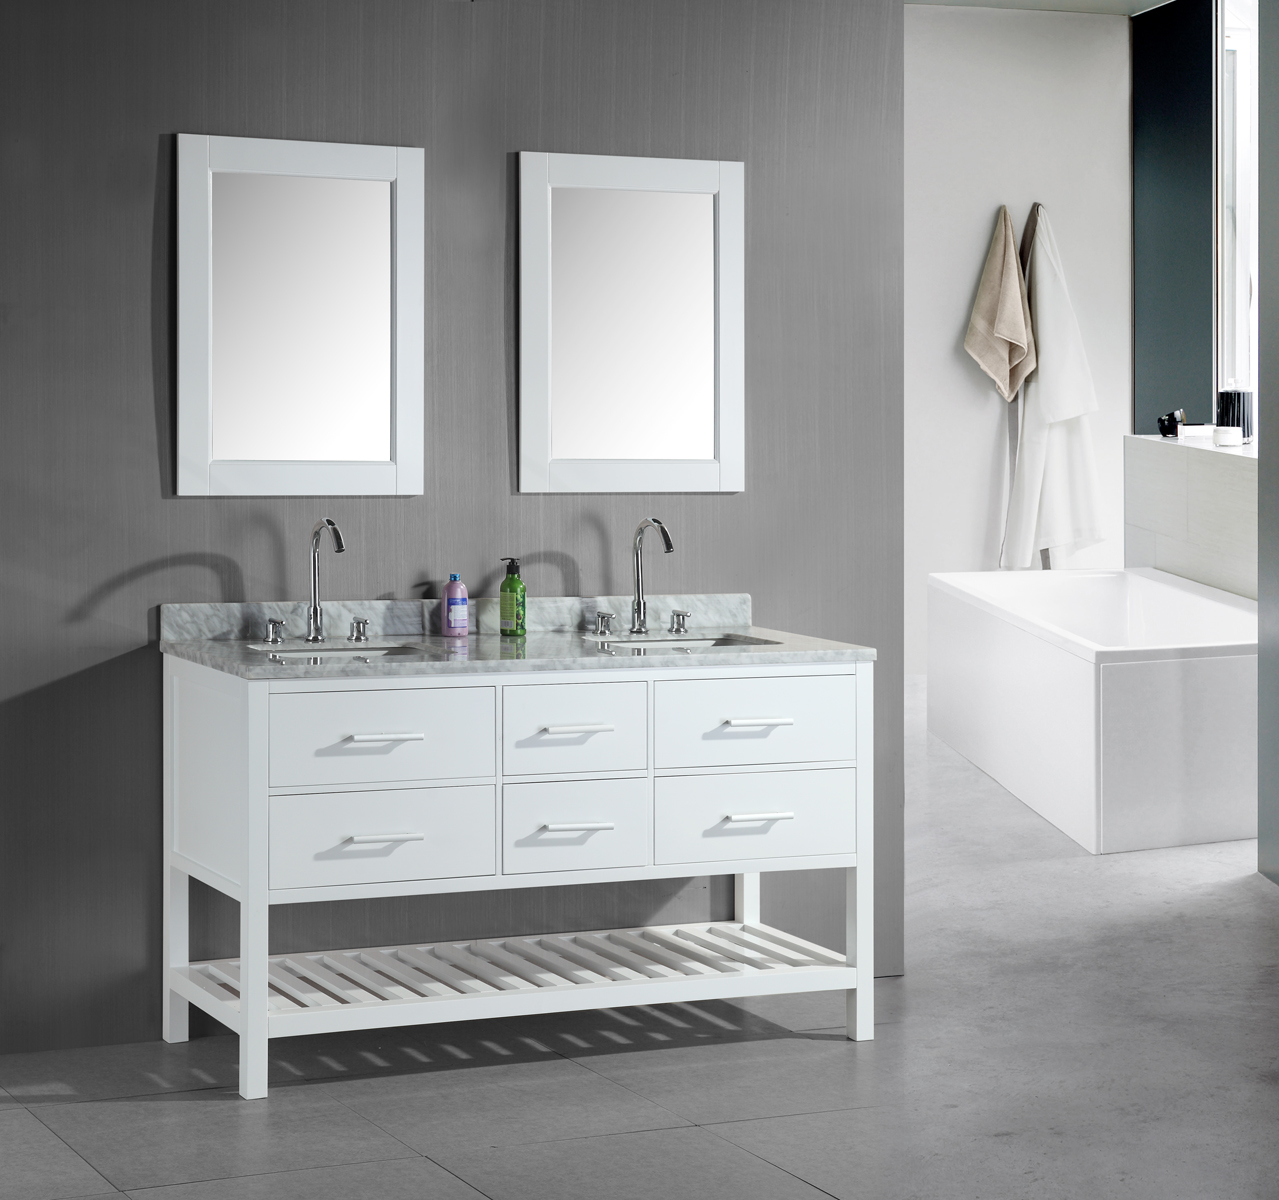 Image of: Console Small Double Sink Vanity